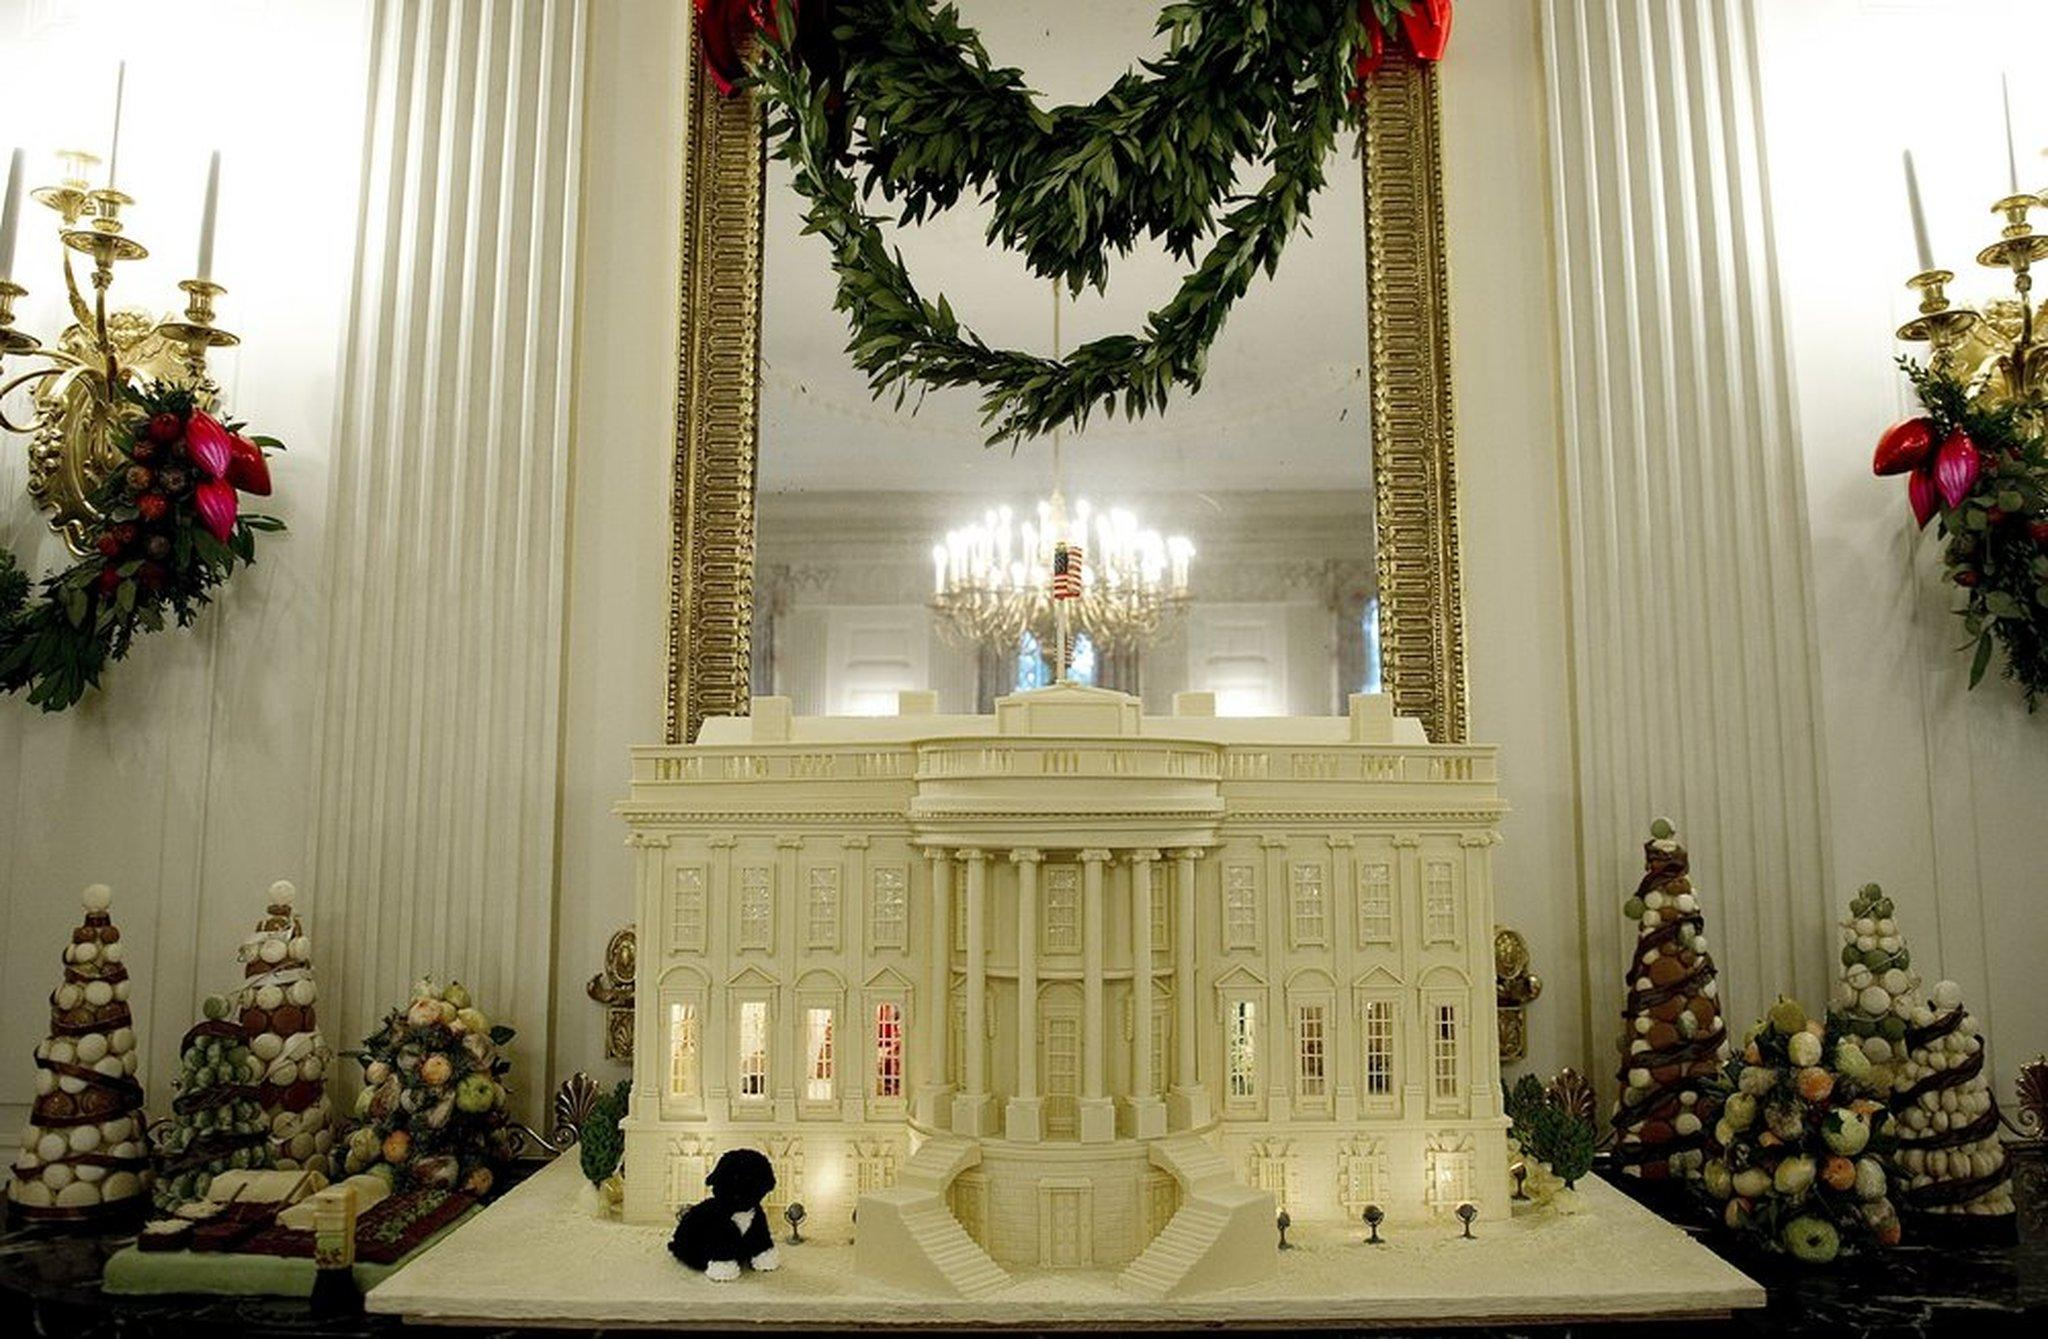 White house christmas ornaments by year -  Shine Give Share Is The Theme For The Obama Family S Third Christmas View Slideshow 11 Of 12